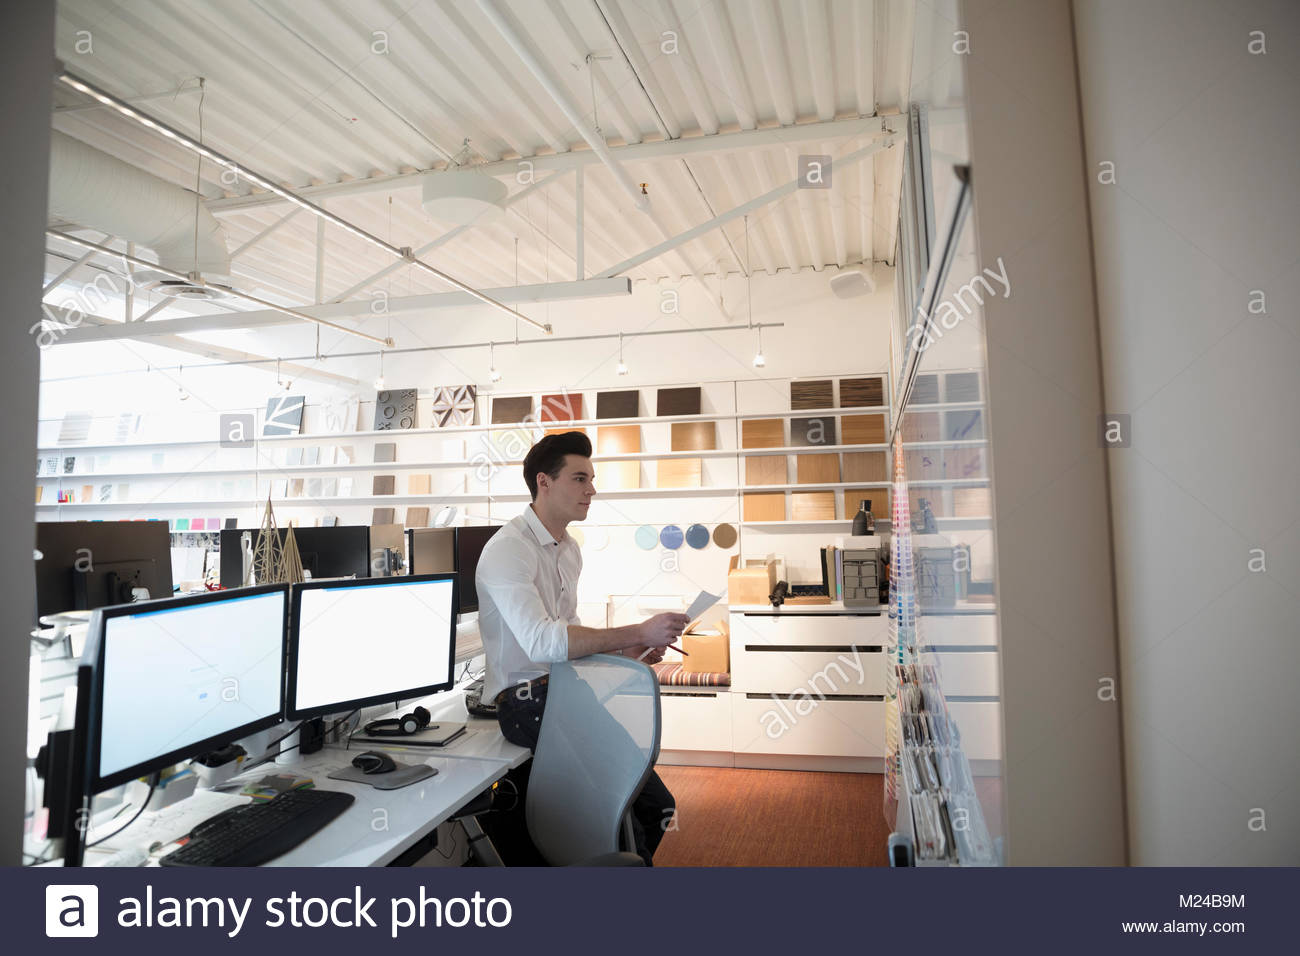 Designer brainstorming at whiteboard in creative office - Stock Image